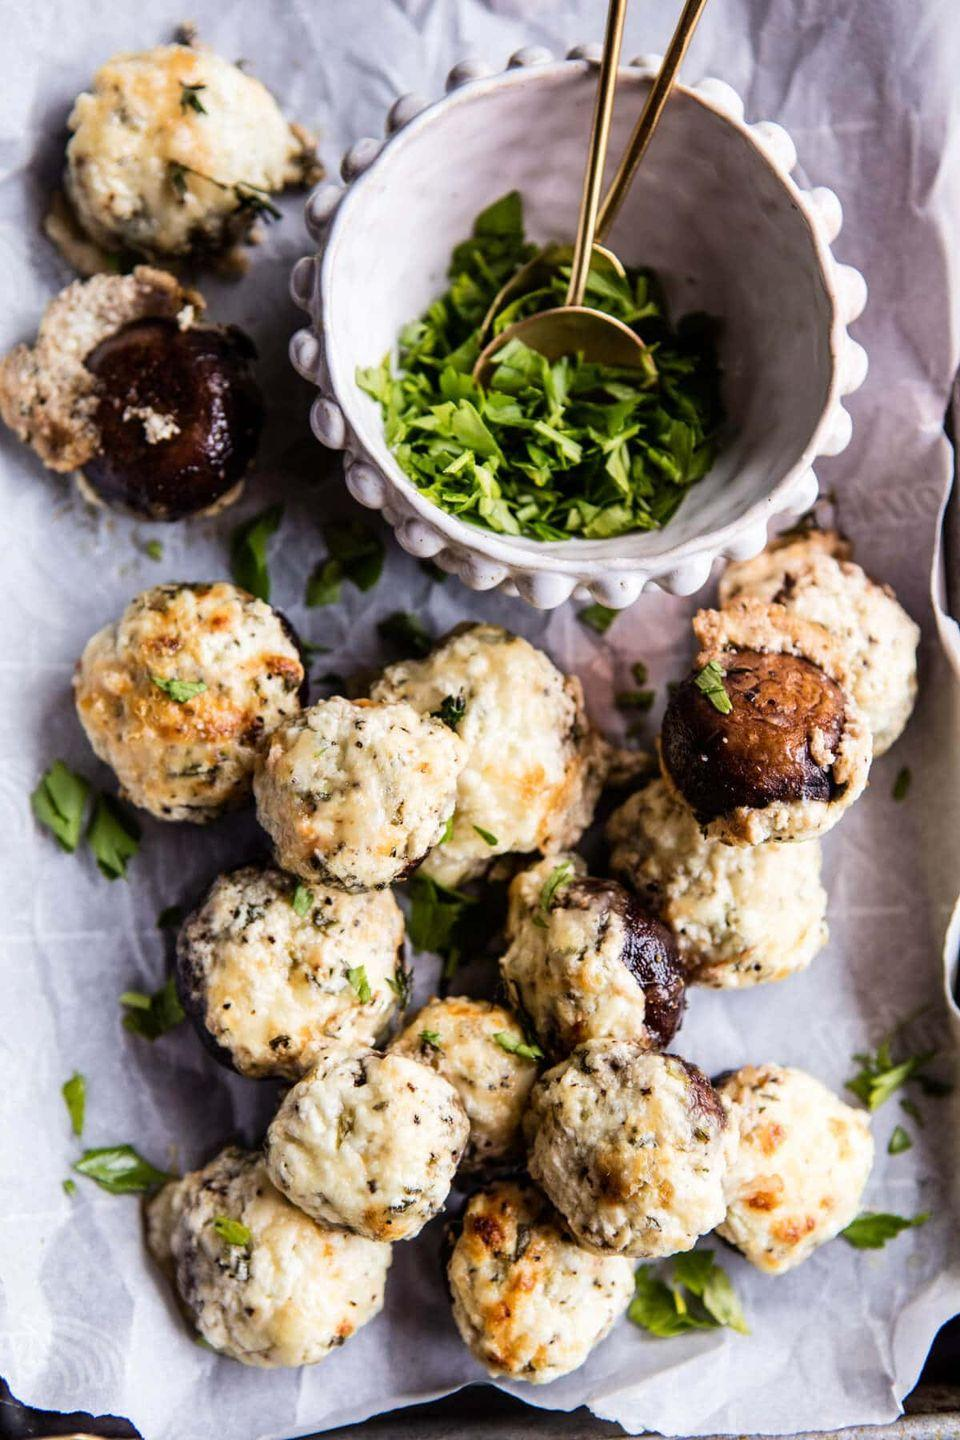 """<p>Take a classic stuffed mushroom dish and turn it into the epitome of a cozy appetizer with herb and goat cheese stuffing.</p><p><strong>Get the recipe at <a href=""""https://www.halfbakedharvest.com/herbed-goat-cheese-stuffed-mushrooms/"""" rel=""""nofollow noopener"""" target=""""_blank"""" data-ylk=""""slk:Half Baked Harvest"""" class=""""link rapid-noclick-resp"""">Half Baked Harvest</a>.</strong> </p>"""